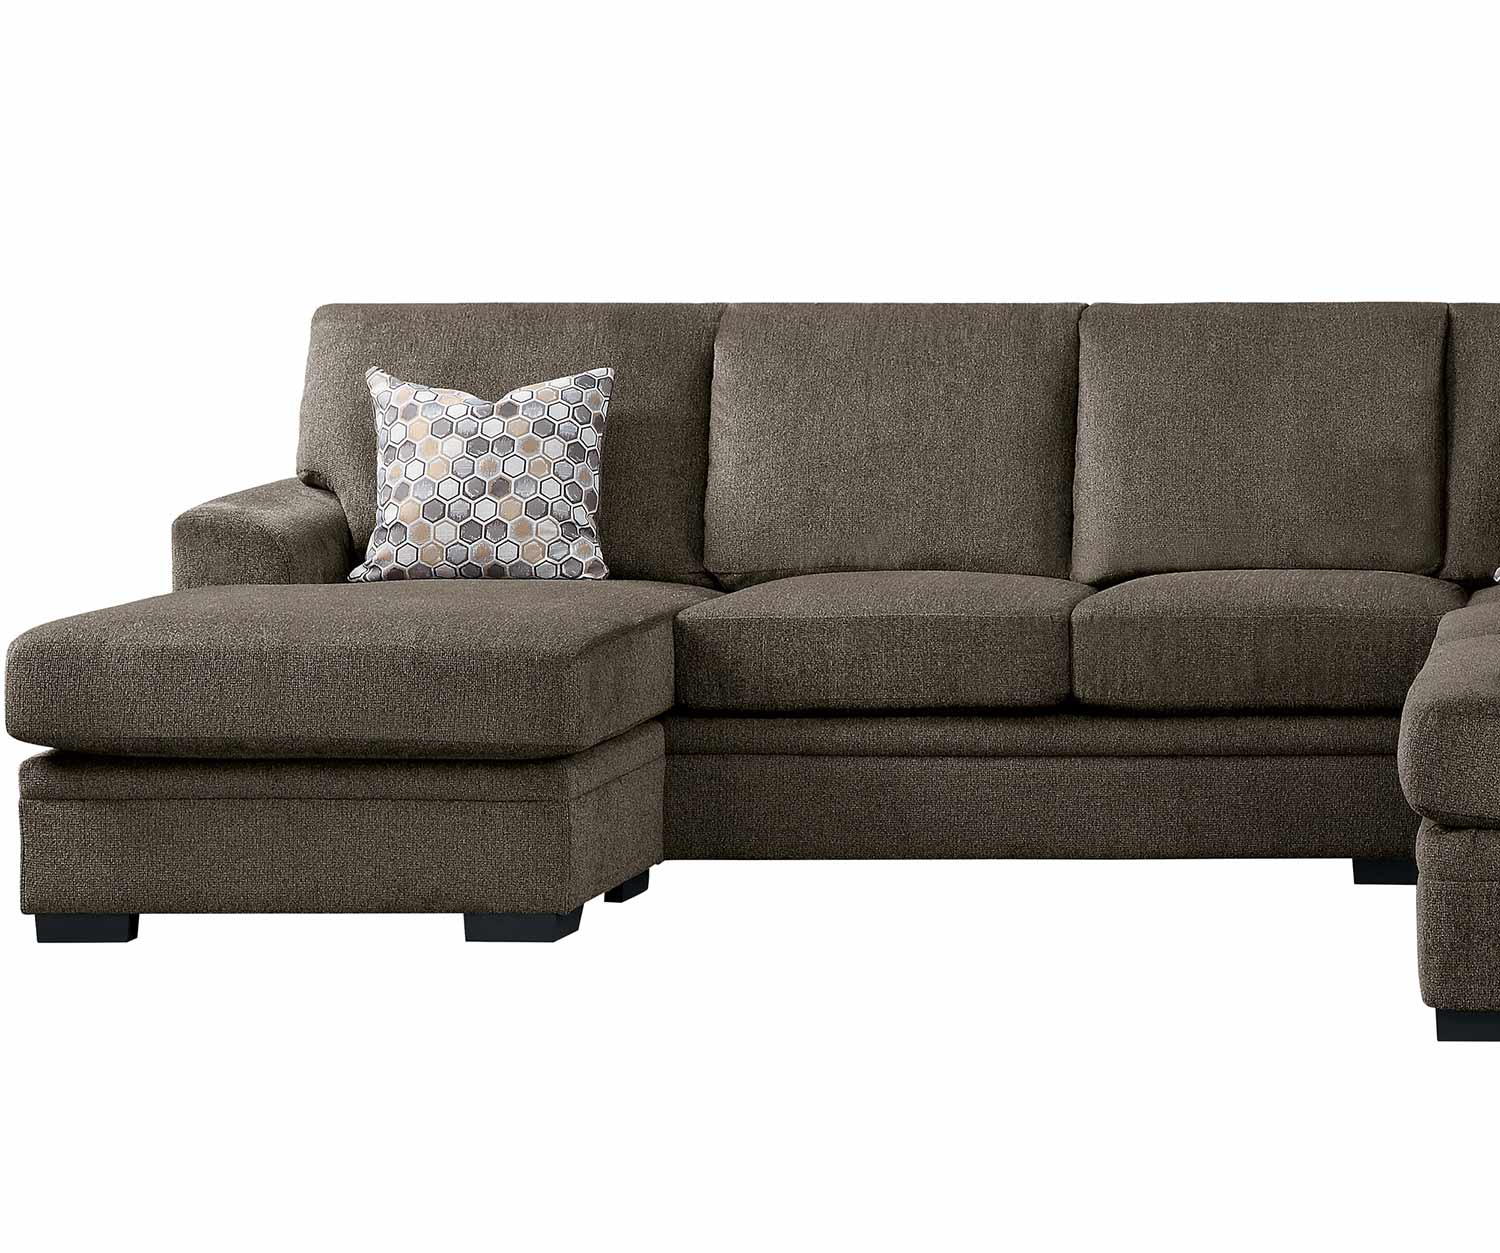 Homelegance Maddy Left Side 3-Seater with Reversible Sofa Chaise - Brown